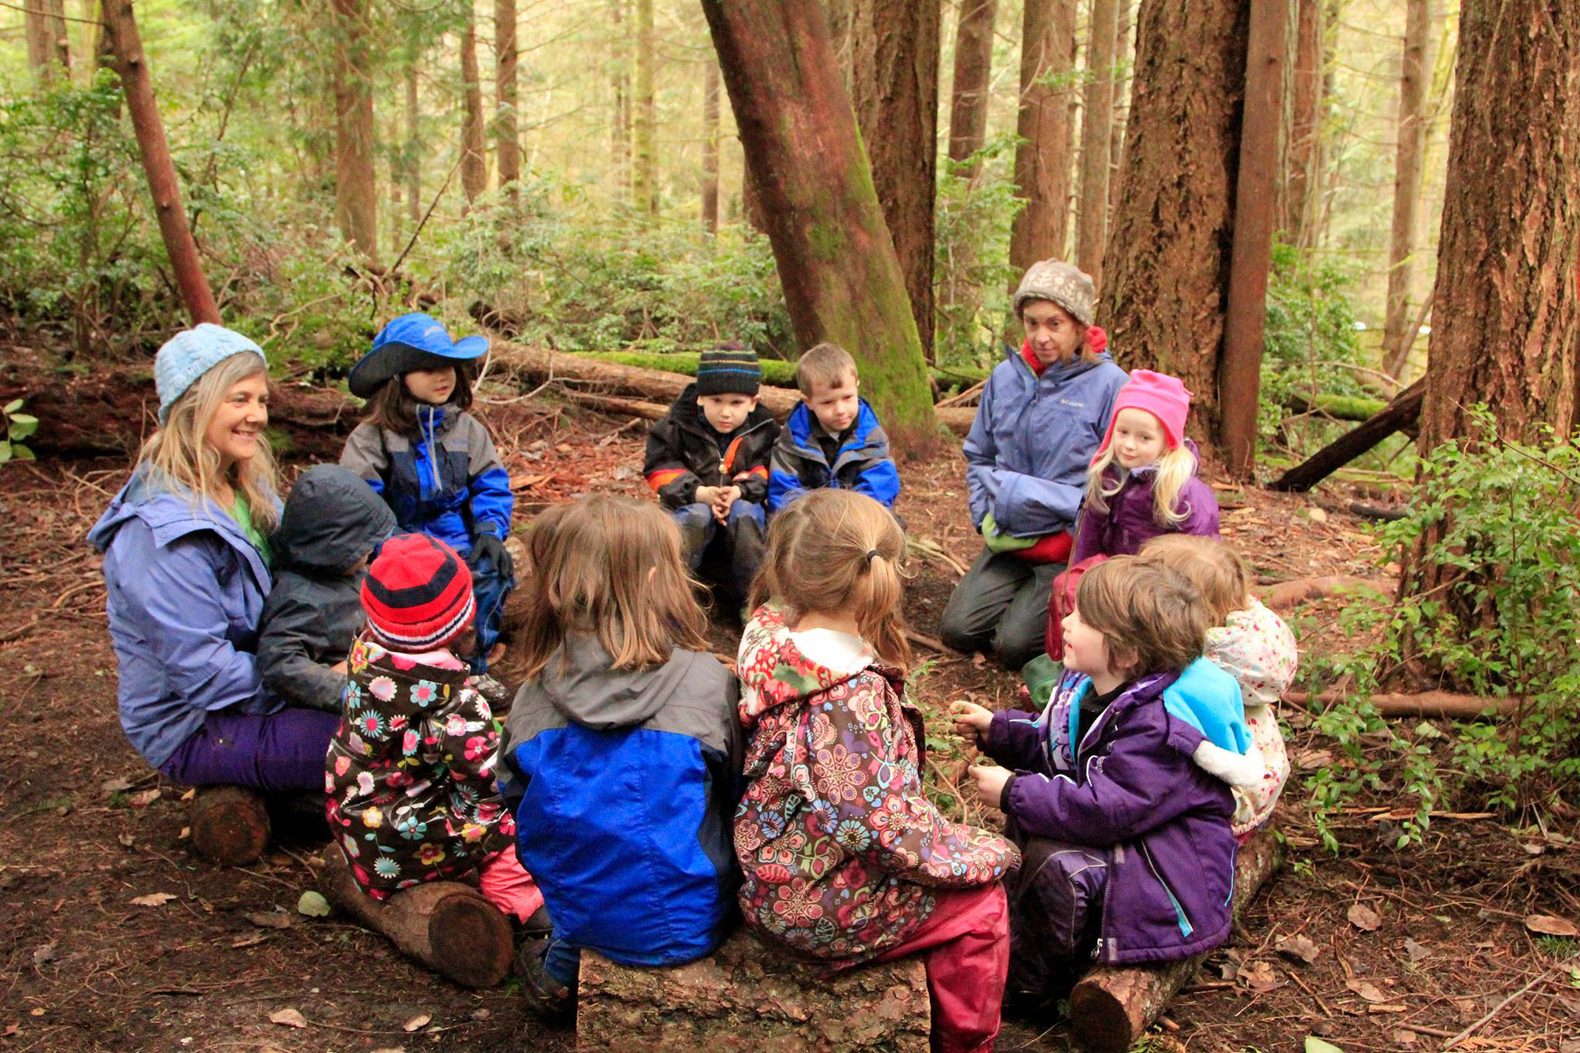 http://s9.picofile.com/file/8314550376/cedarsong_nature_school_forest_kindergarten.jpg